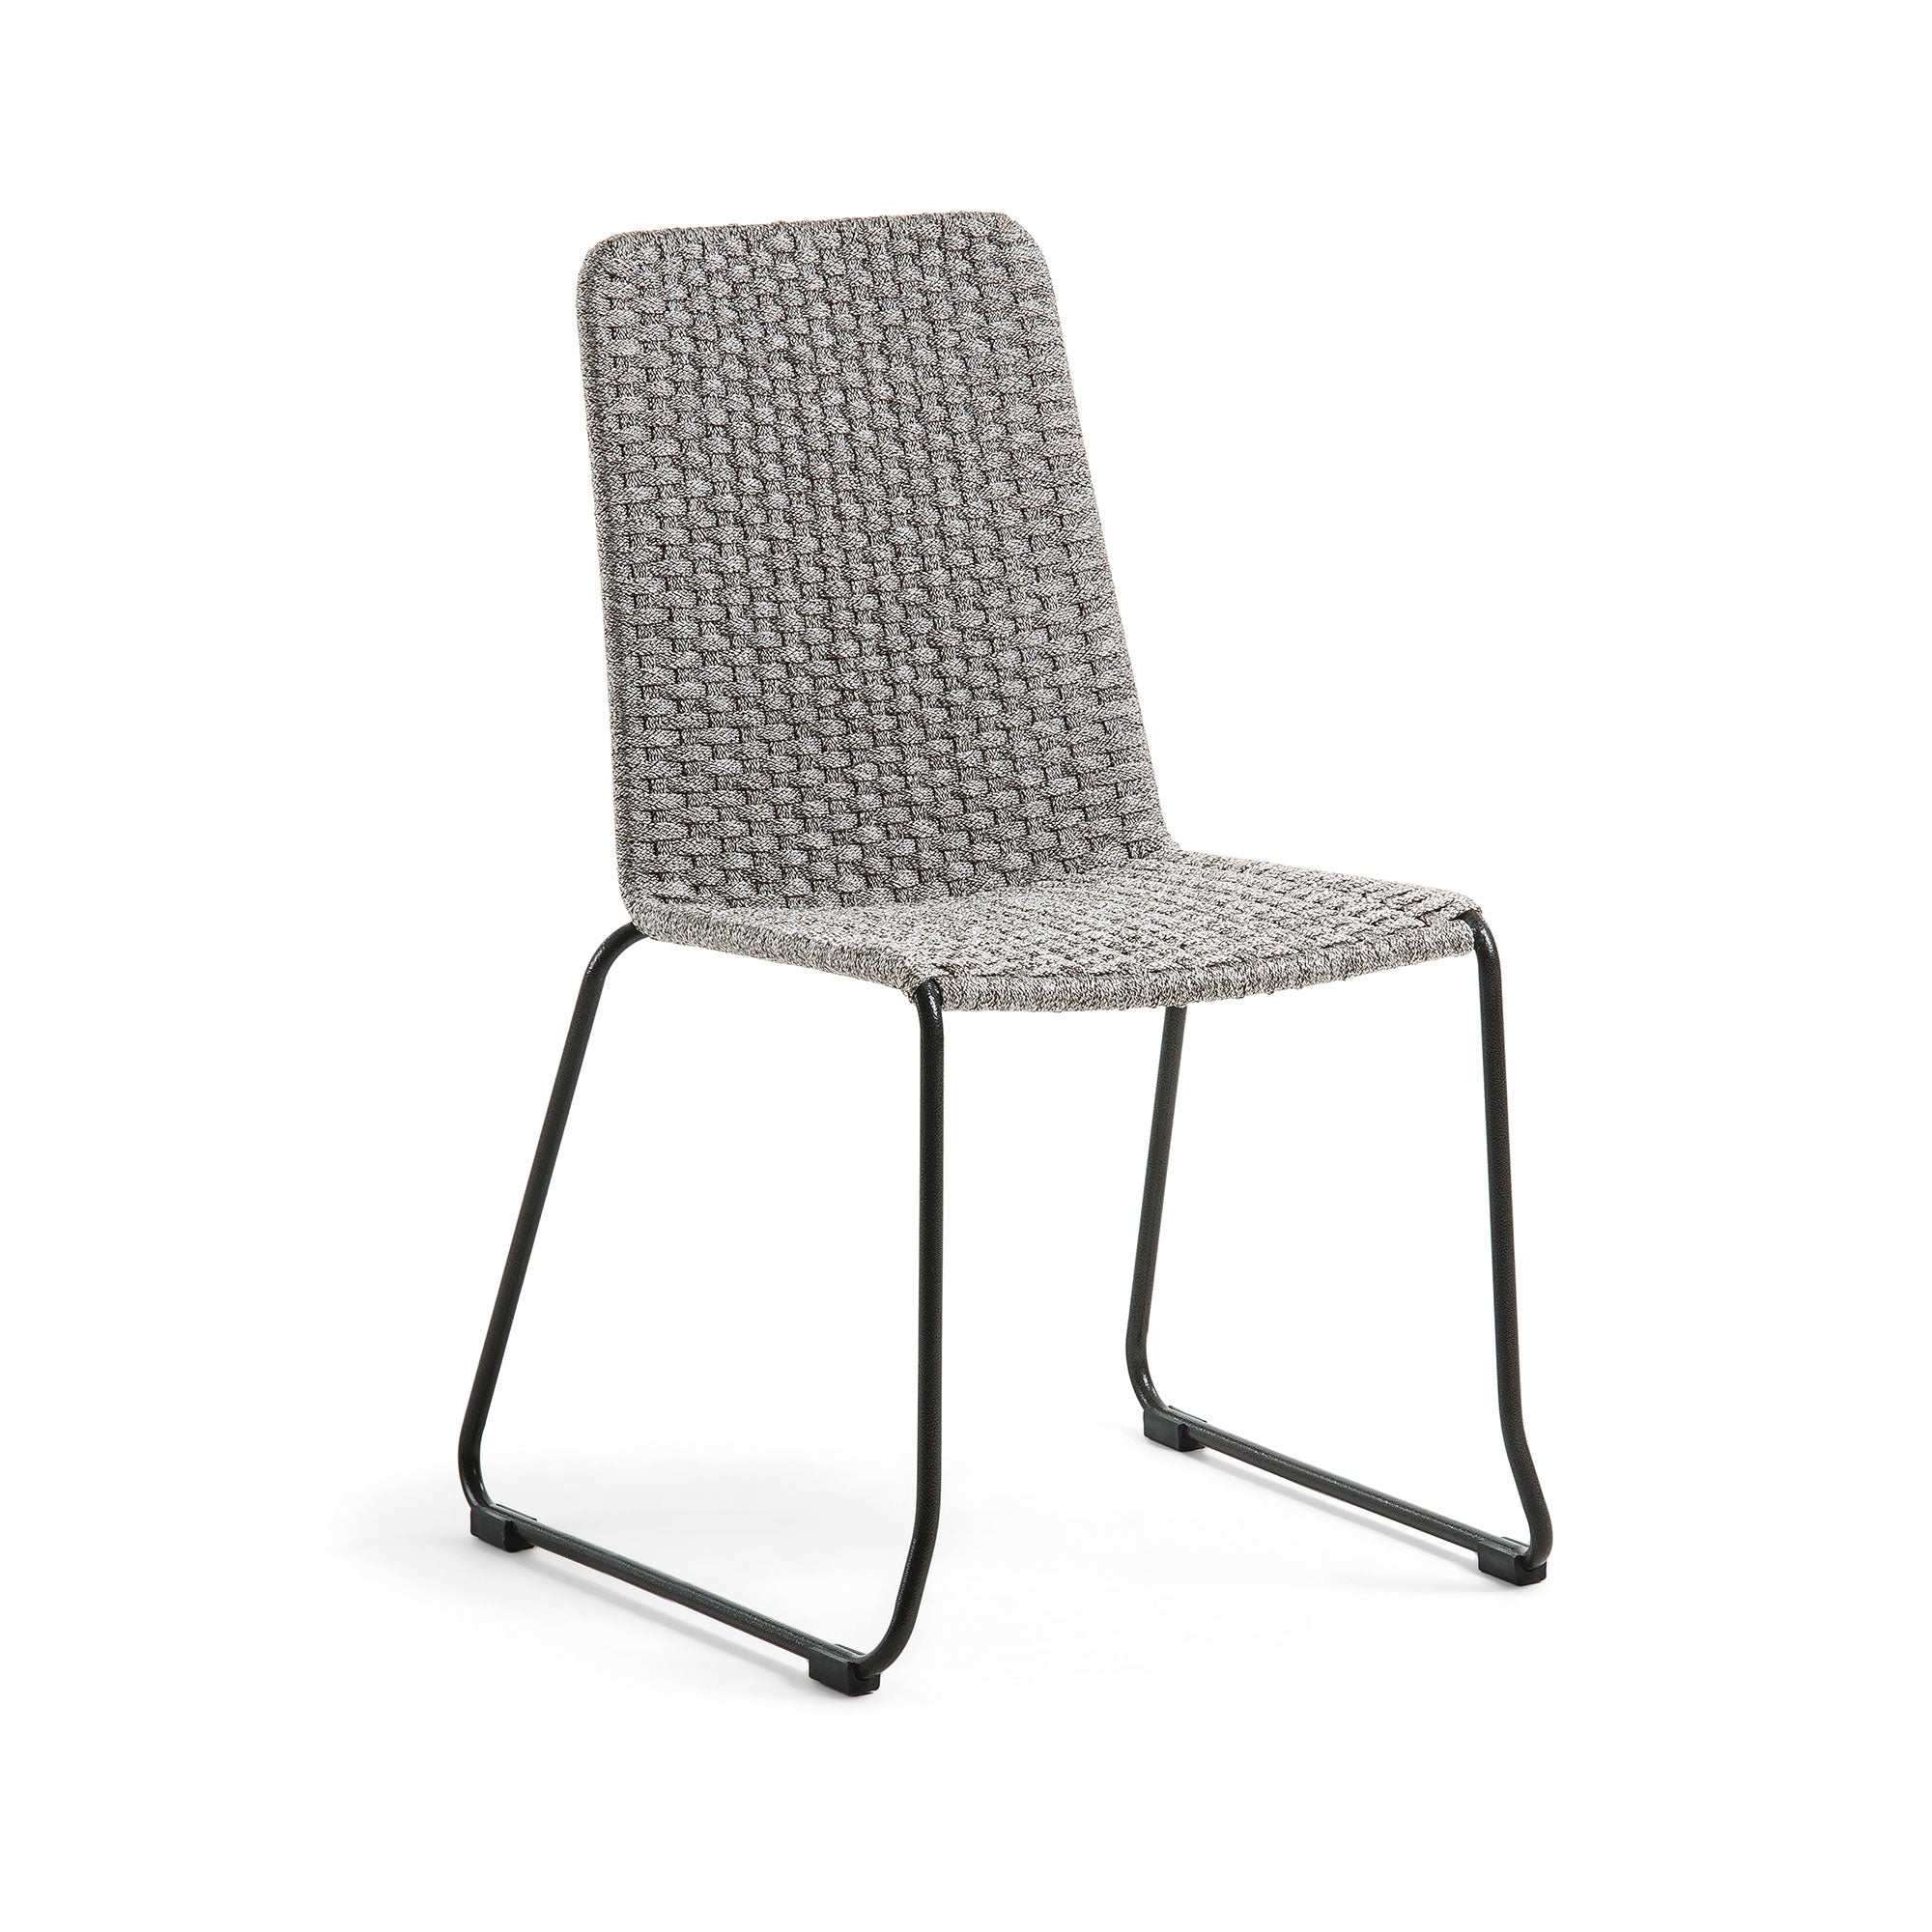 Moko Patio Chair | Grey